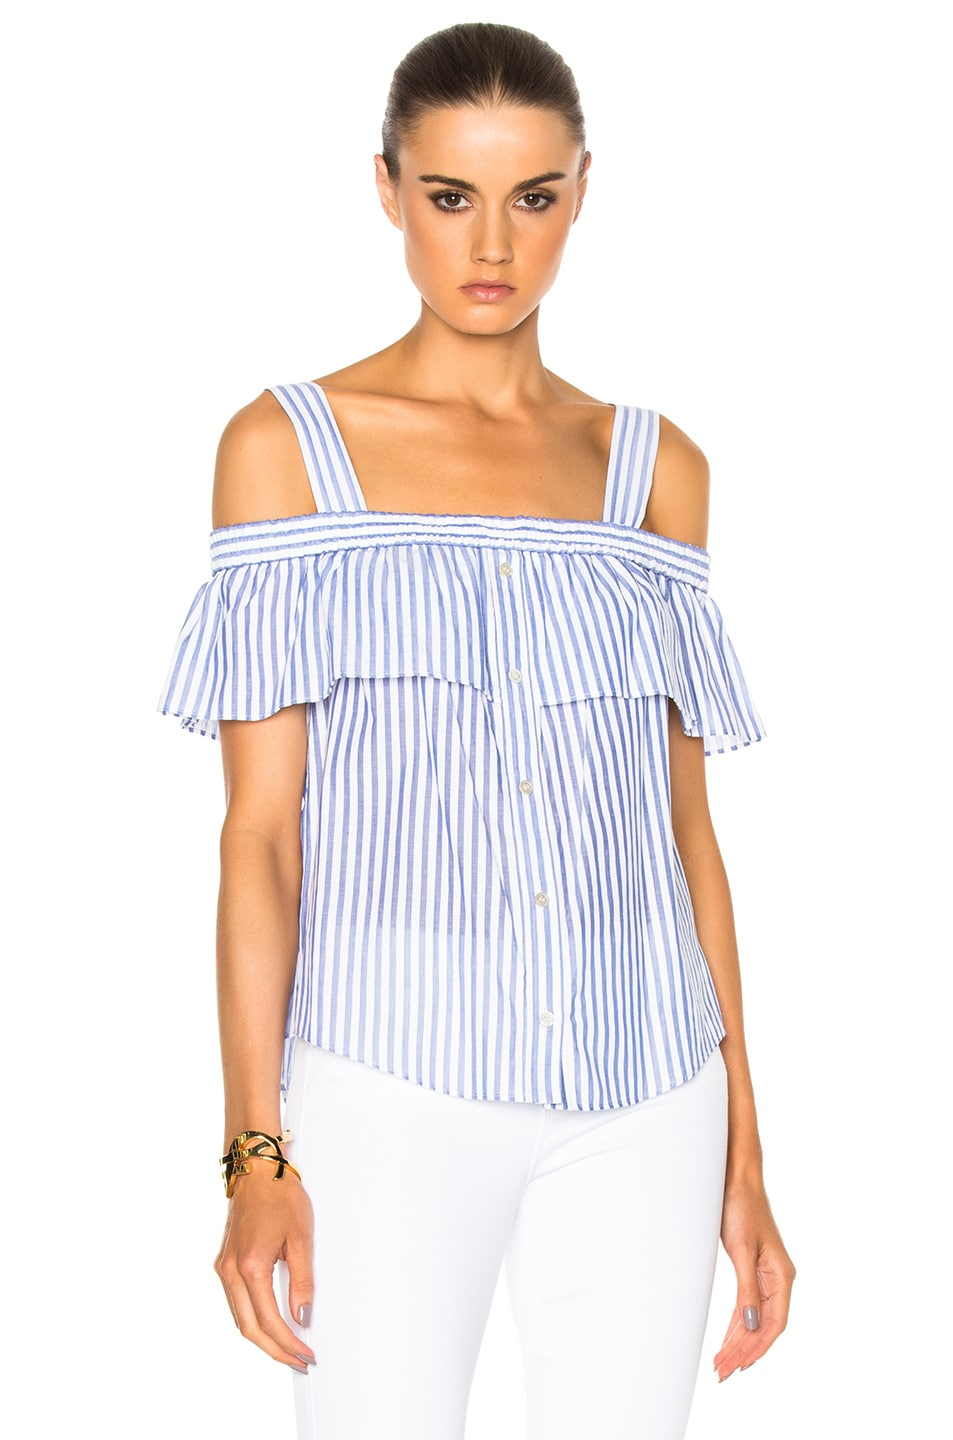 68dfc88a69a55 Image 1 of Veronica Beard Lacey Cold Shoulder Top in Blue   White Stripes